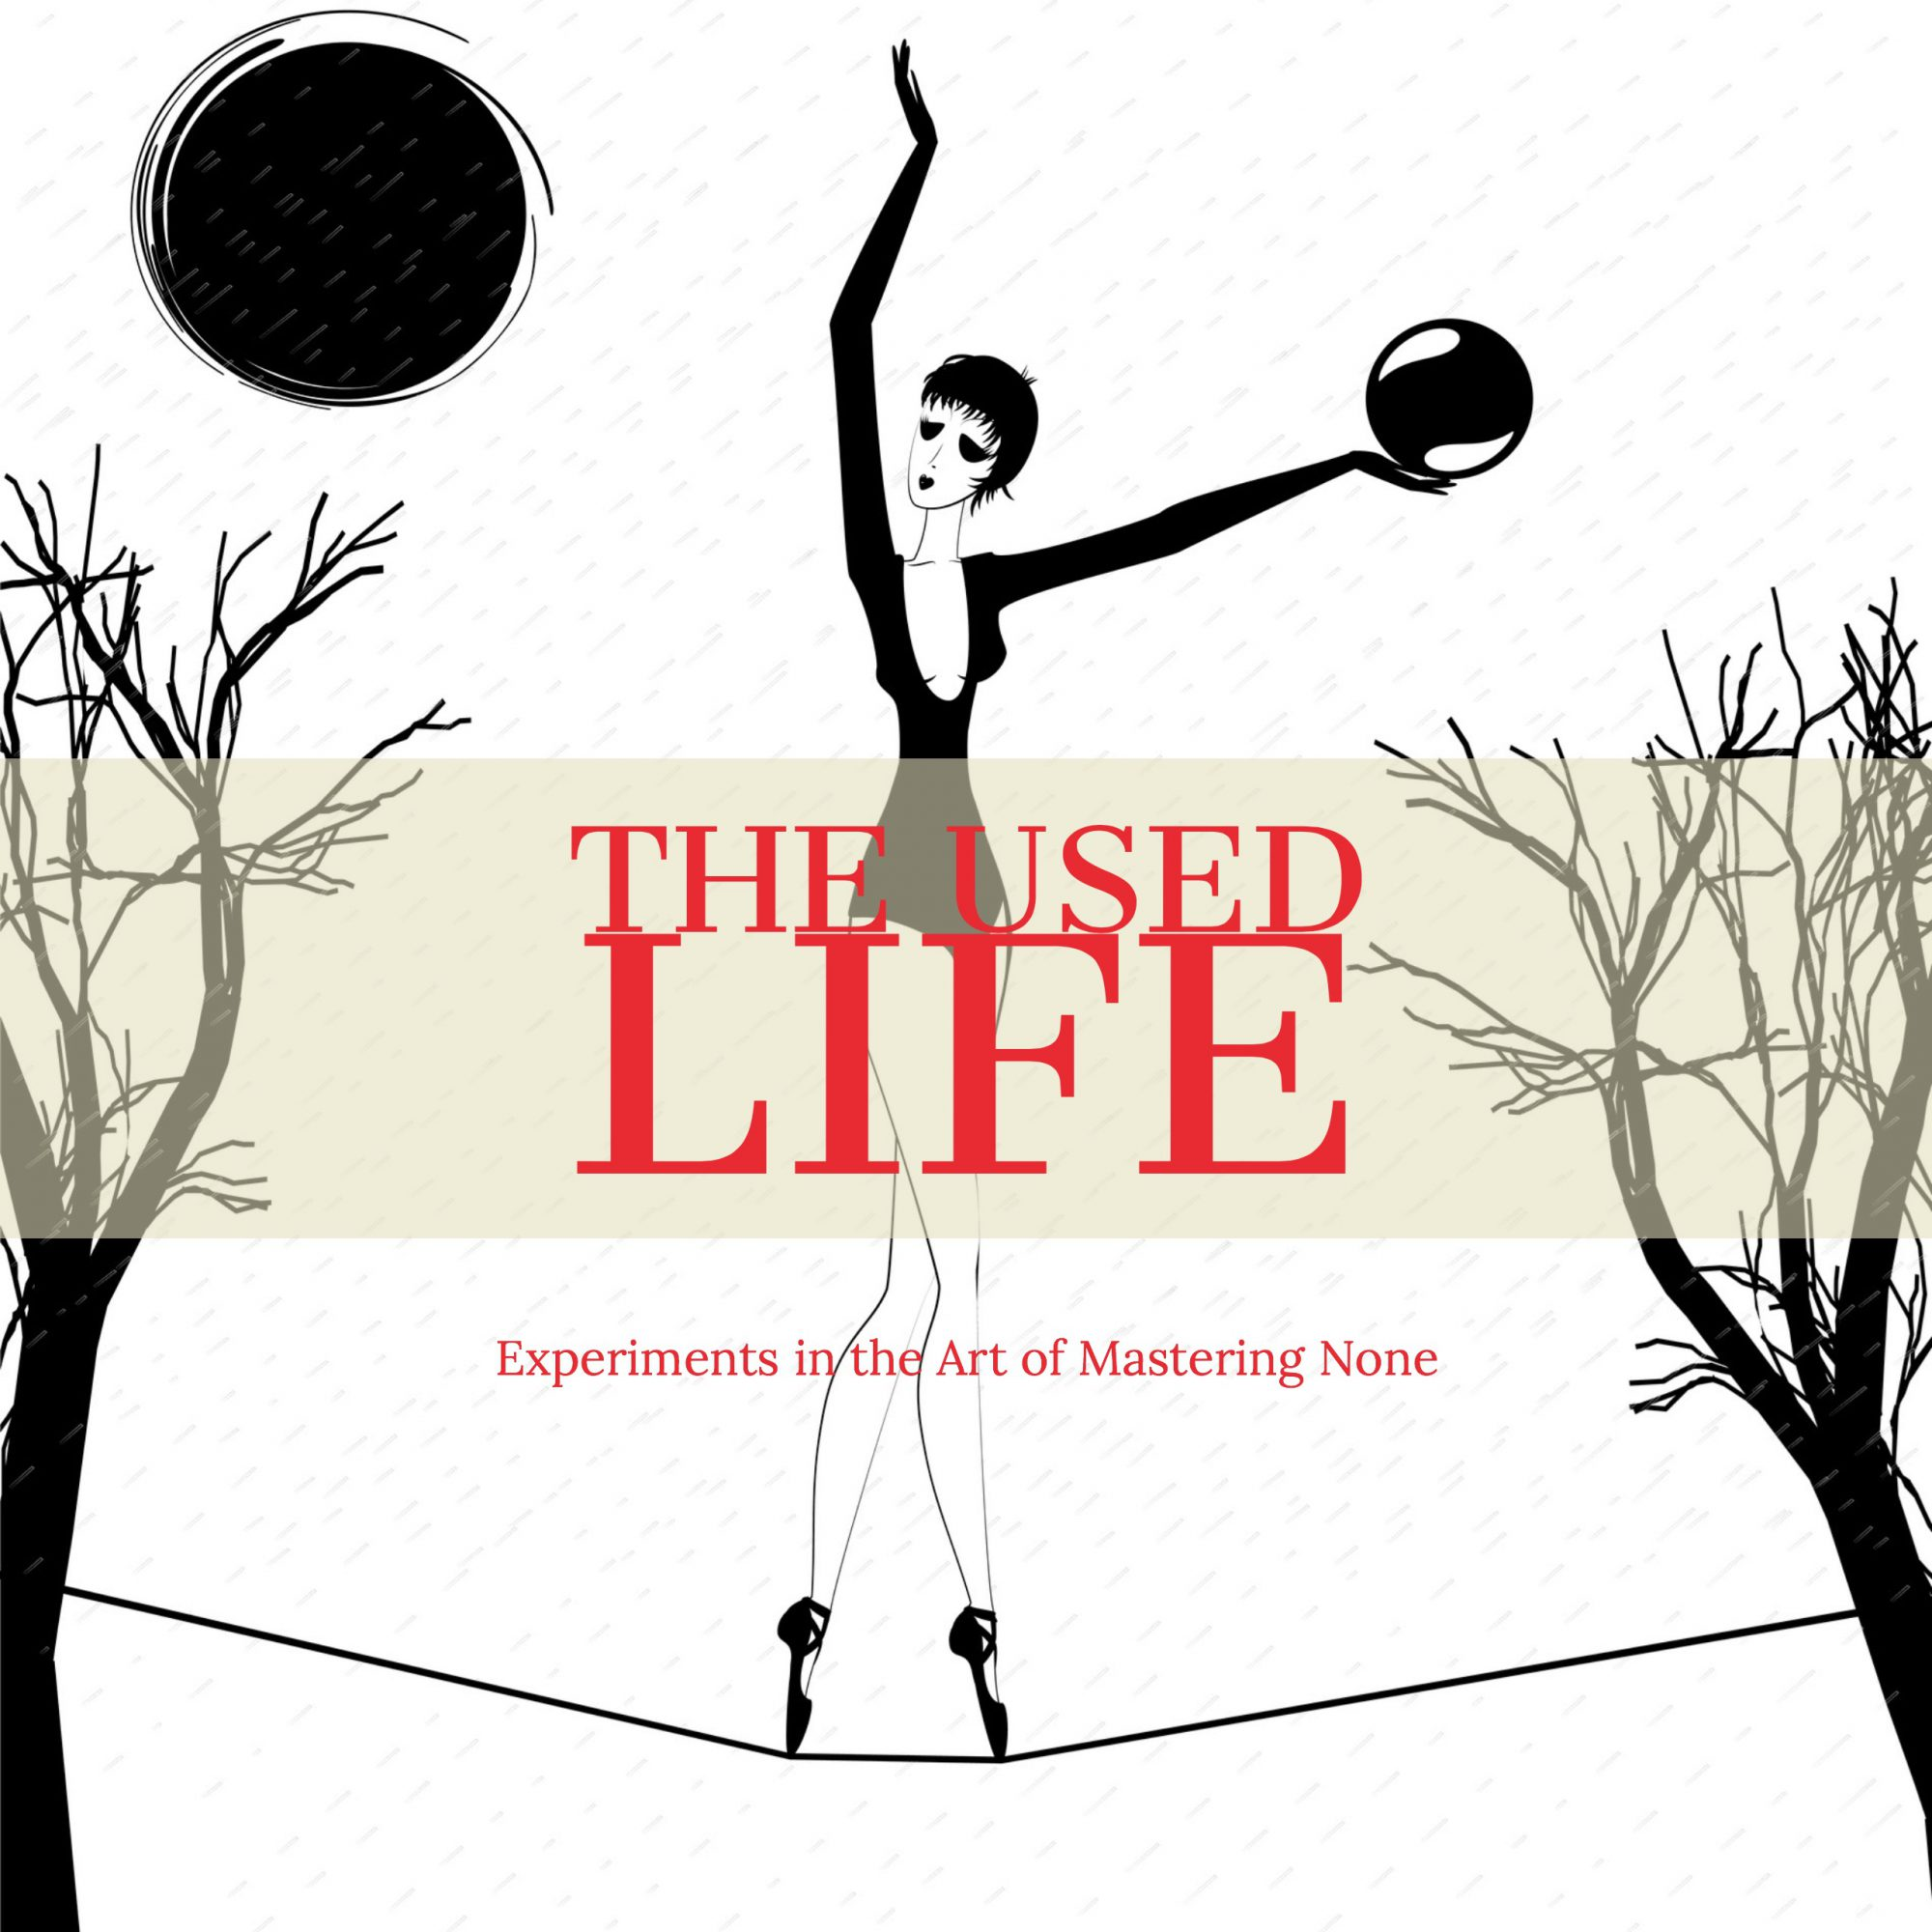 The Used Life